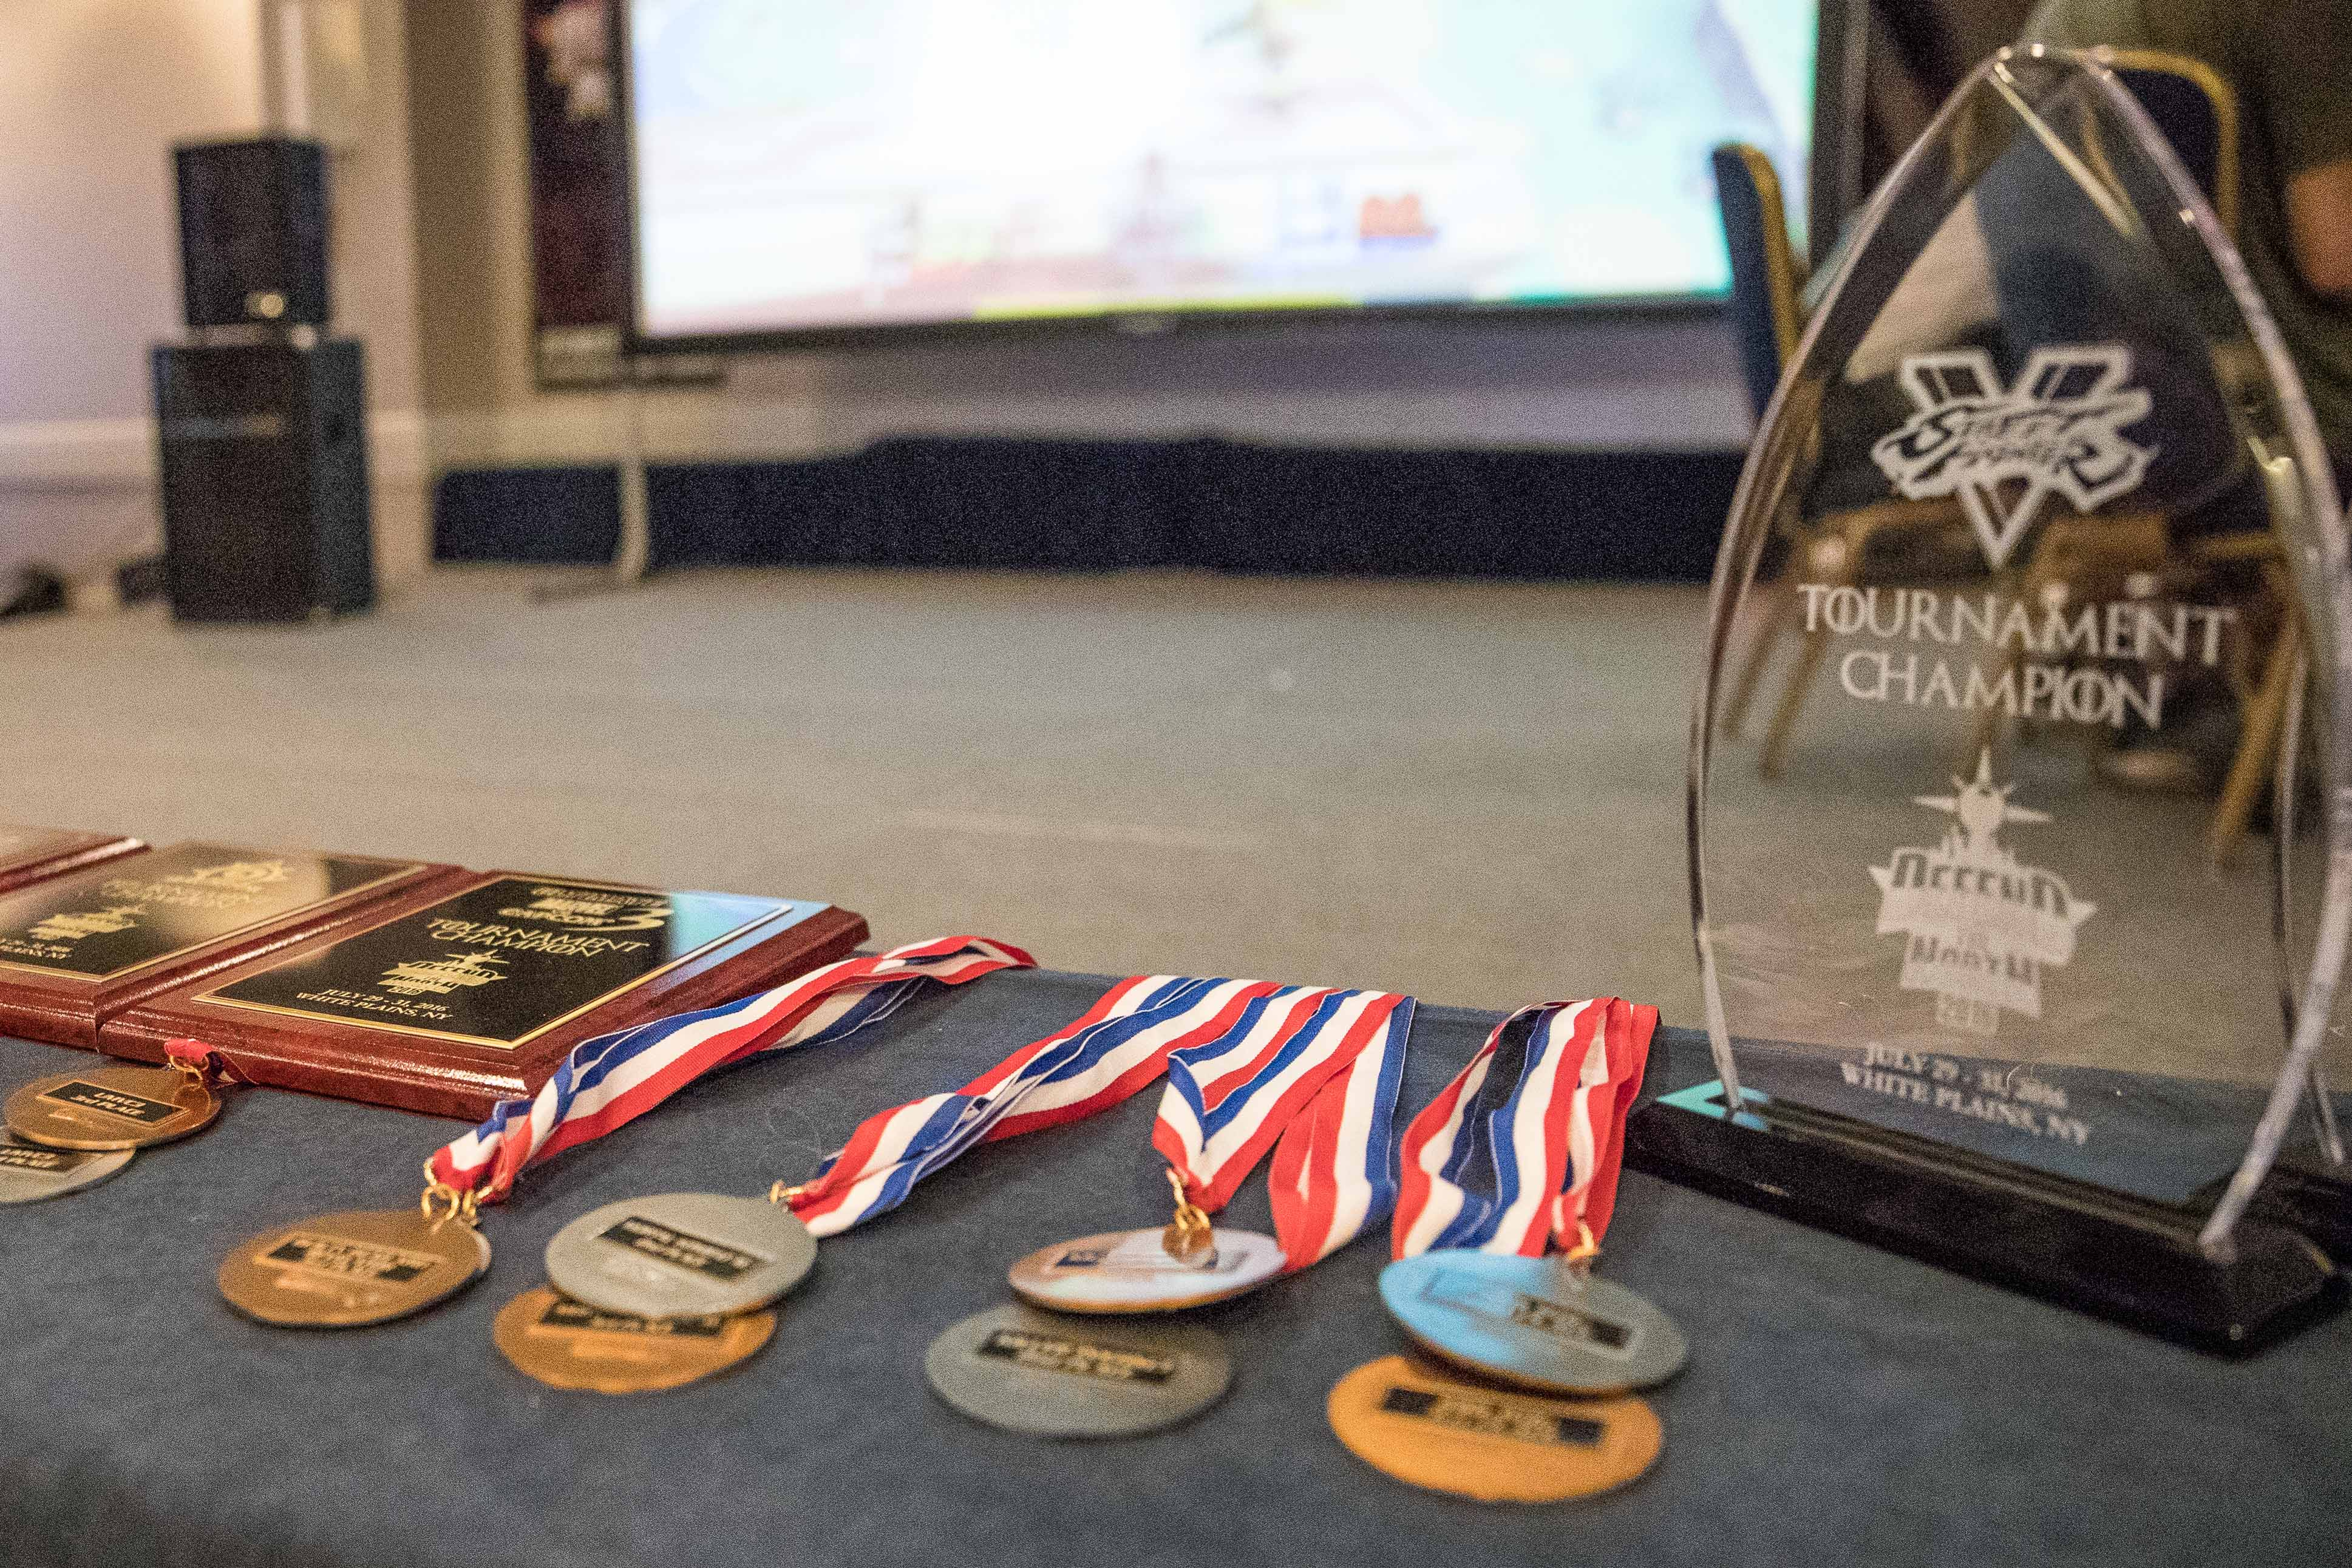 Note: Our award winners will NOT be receiving medals or any other sort of physical award, only the glory of being recognized by the greatest Miami Dolphins website in the world!